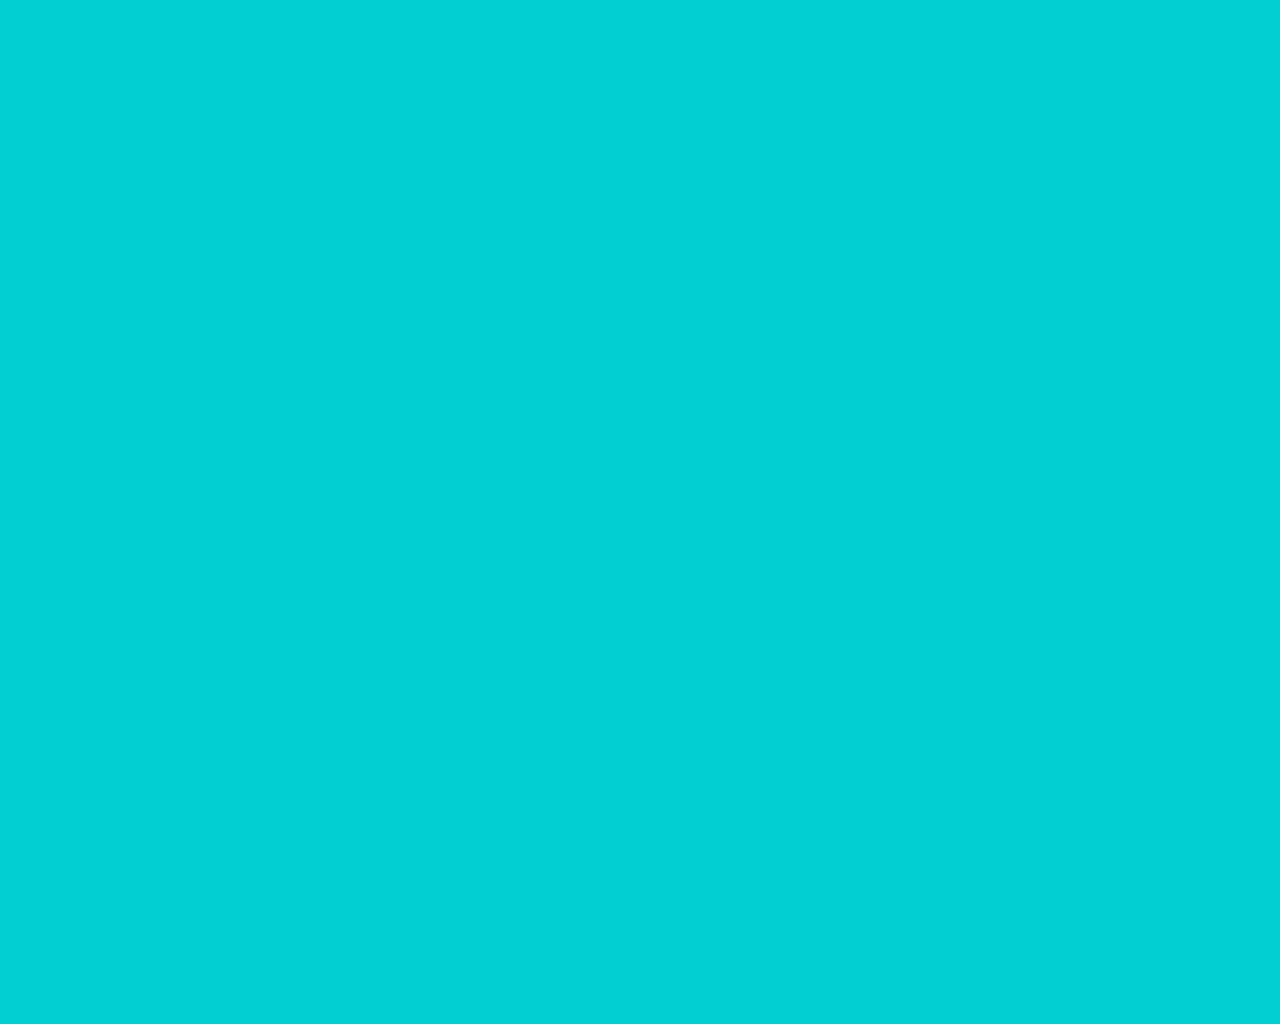 1280x1024 Dark Turquoise Solid Color Background